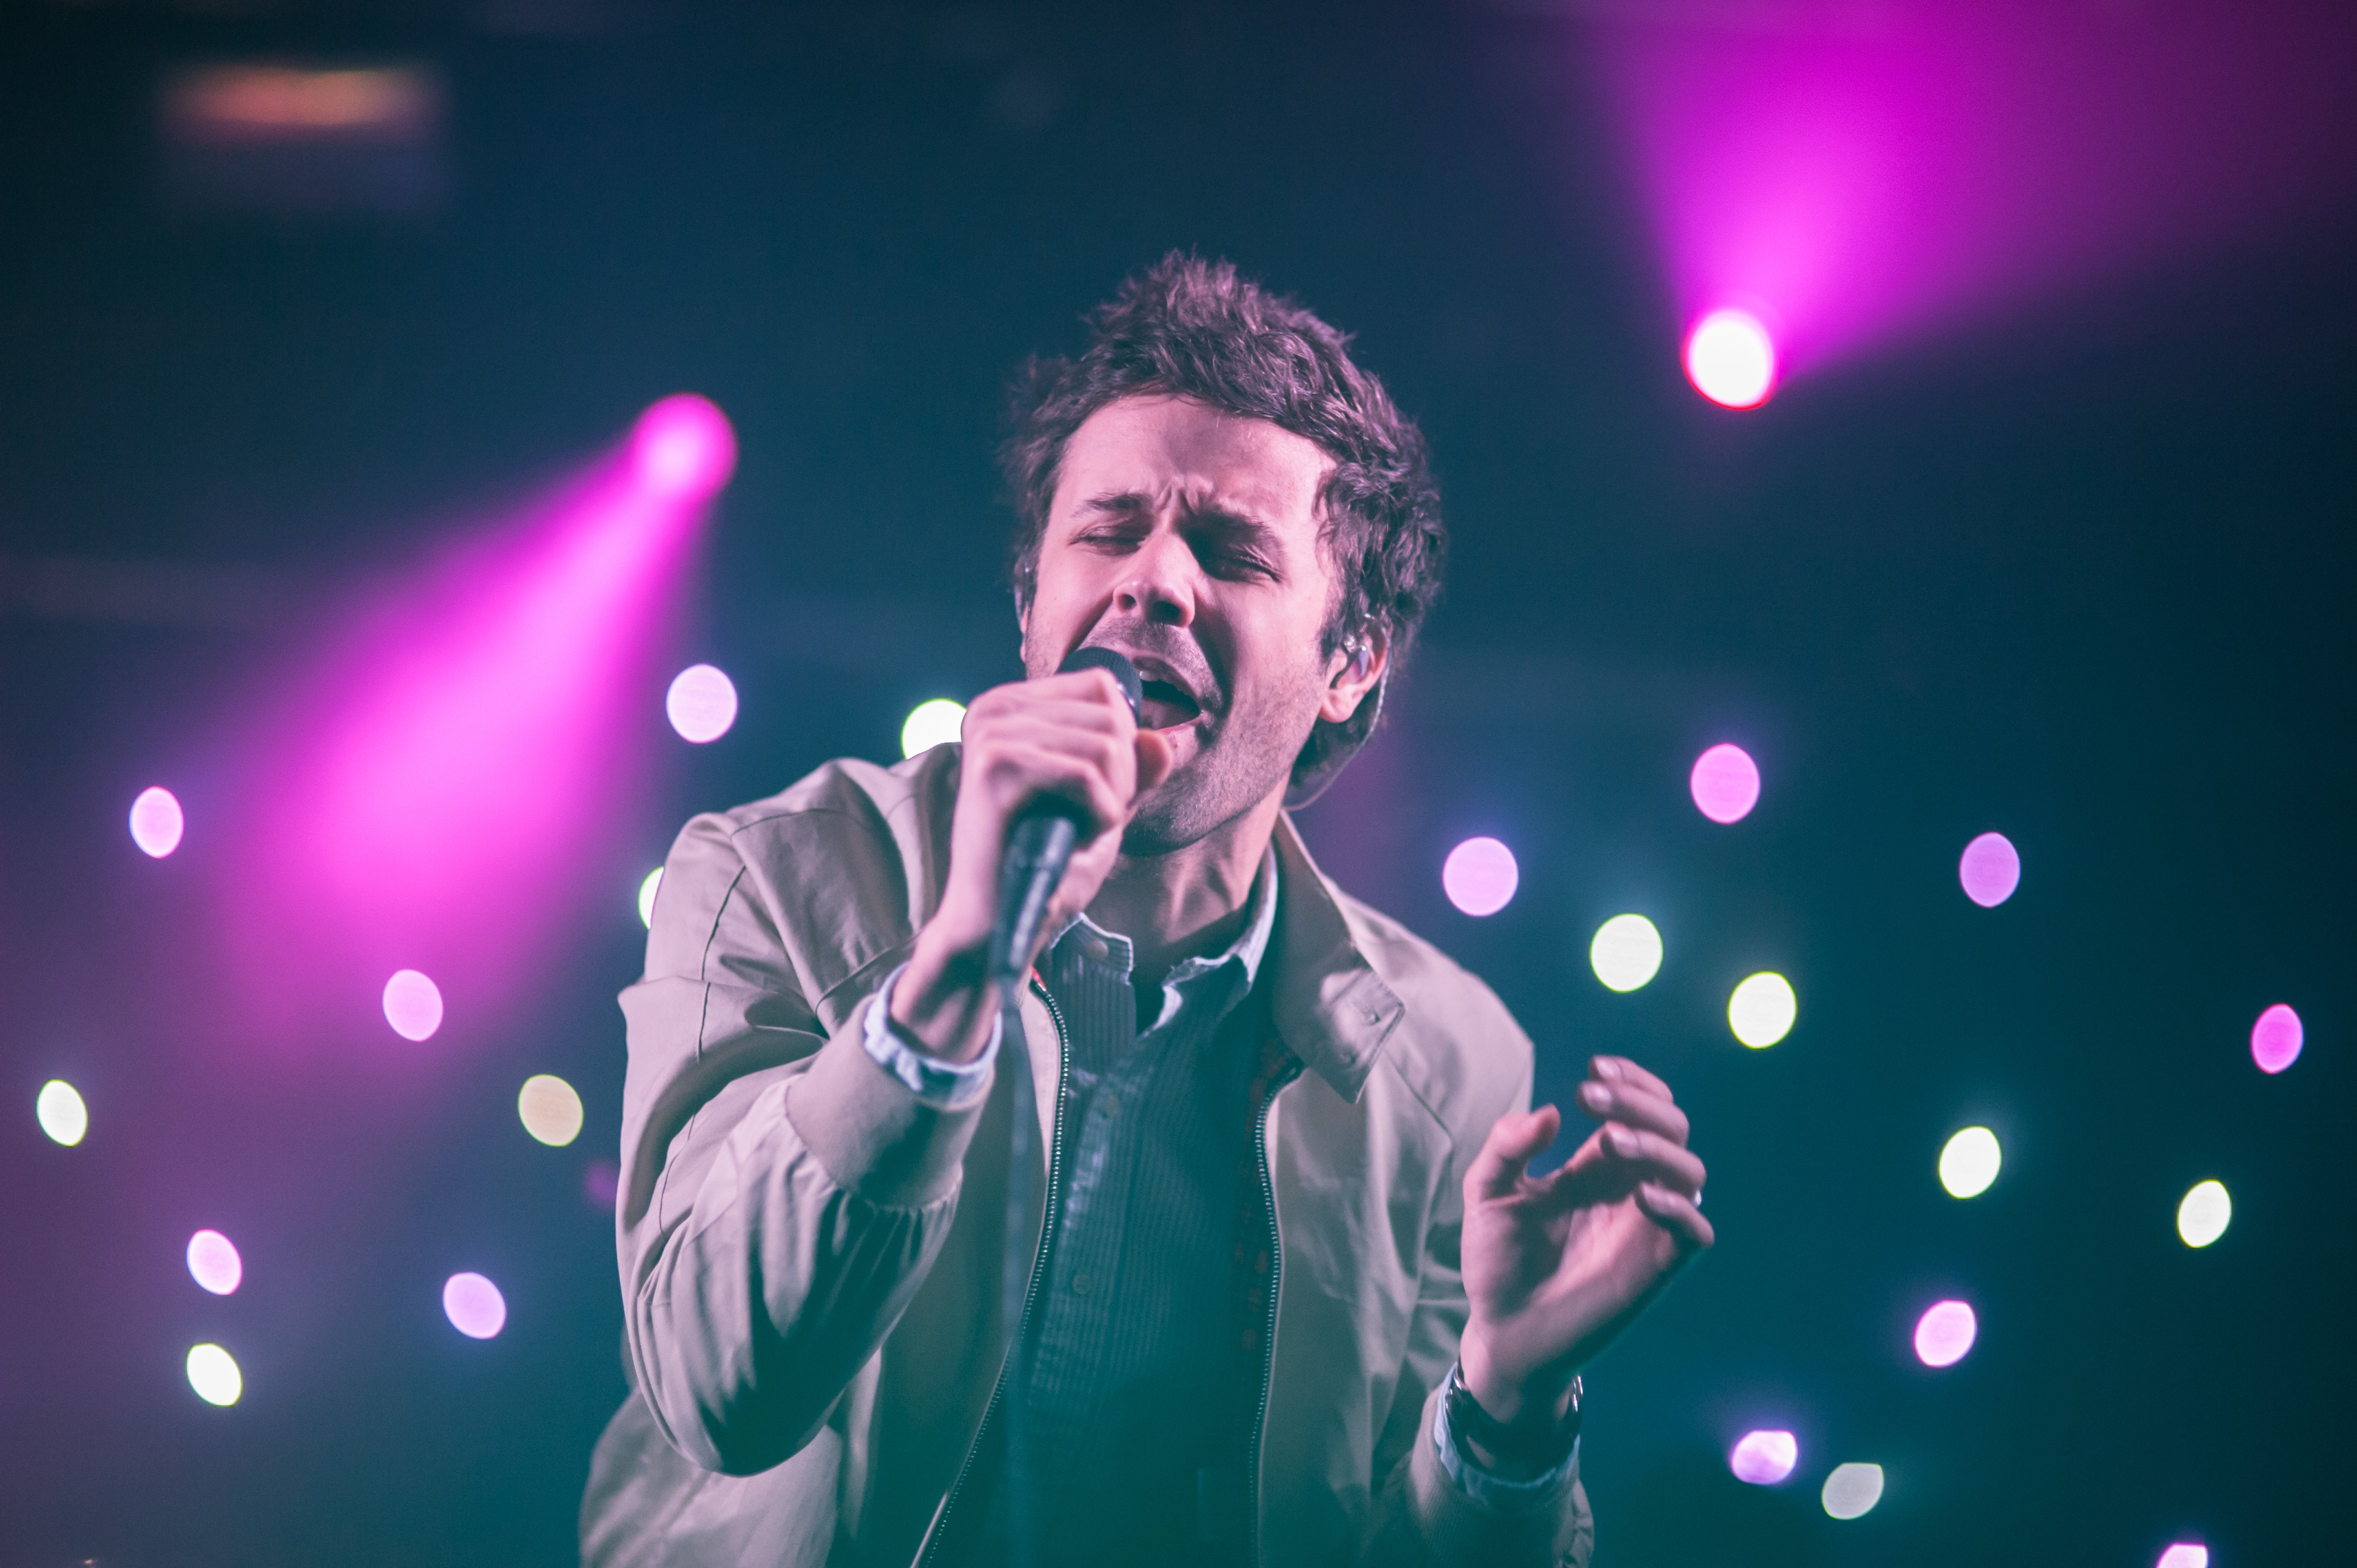 Hear Passion Pit's Eclectic New Song 'Somewhere Up There'